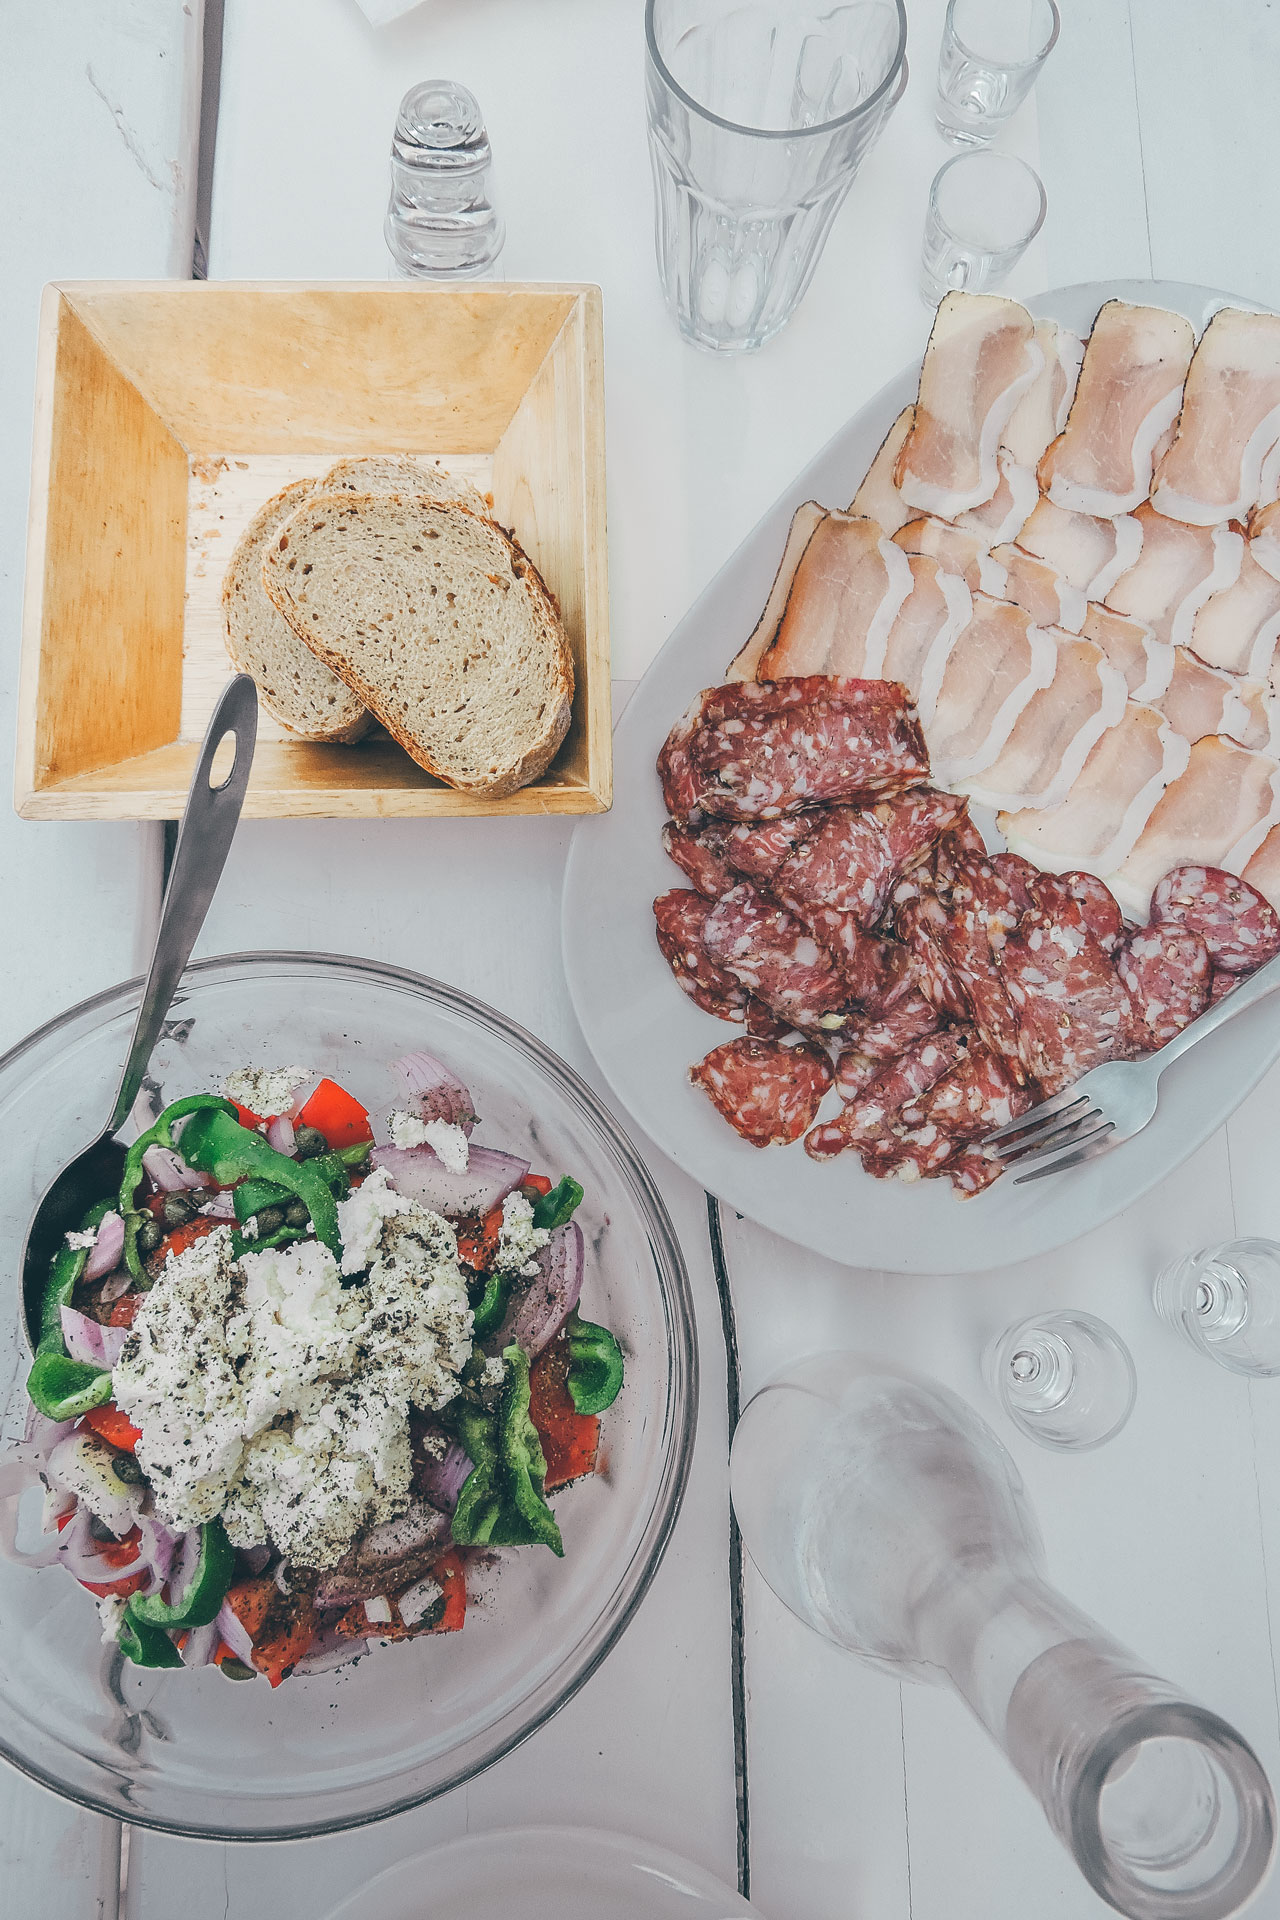 A delicious country sausage or syglino (small pieces of cured pork), accompanied with Greek salad and raki